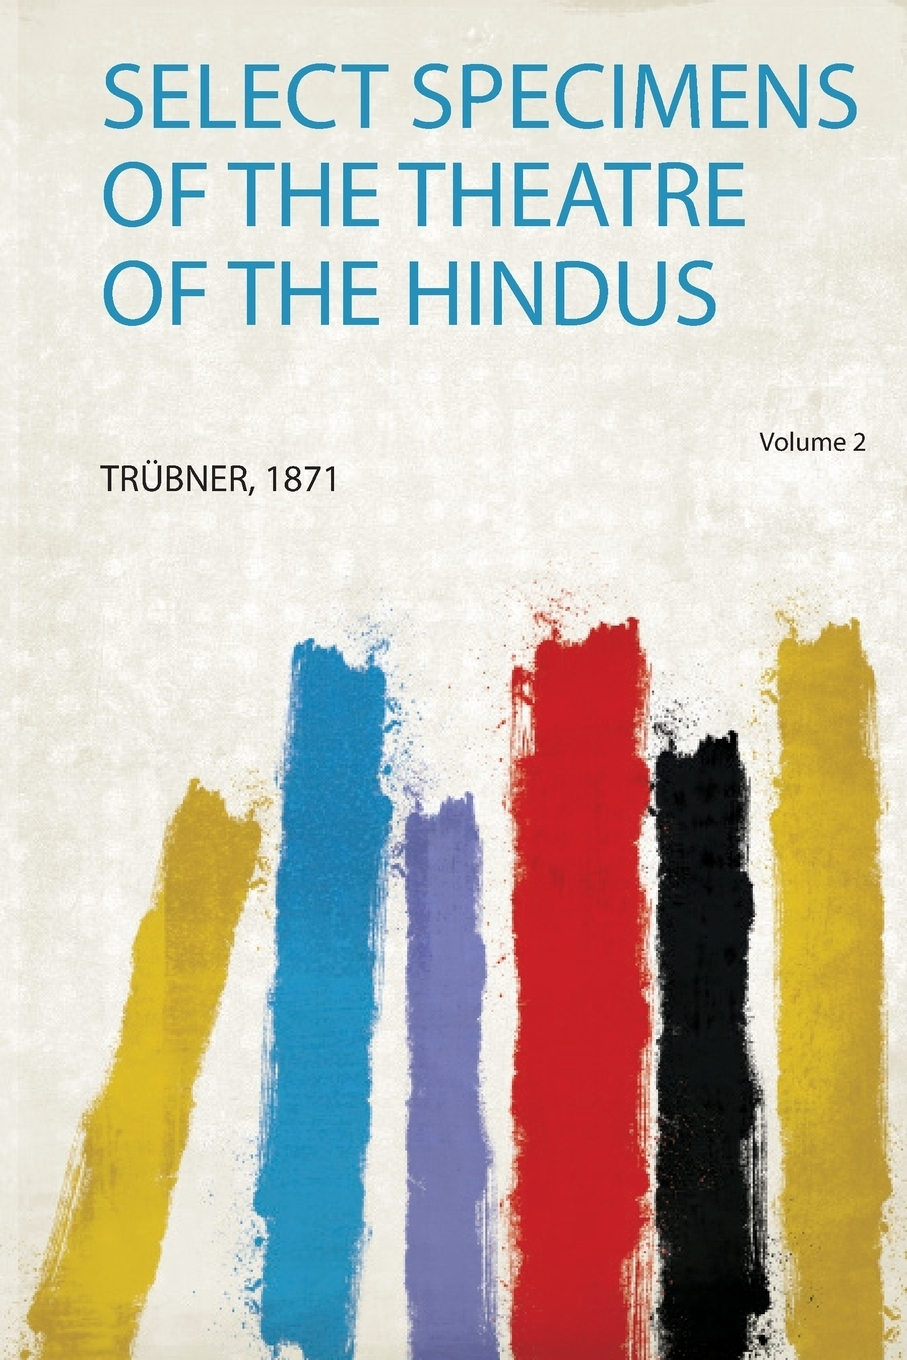 купить Trübner Select Specimens of the Theatre of the Hindus онлайн